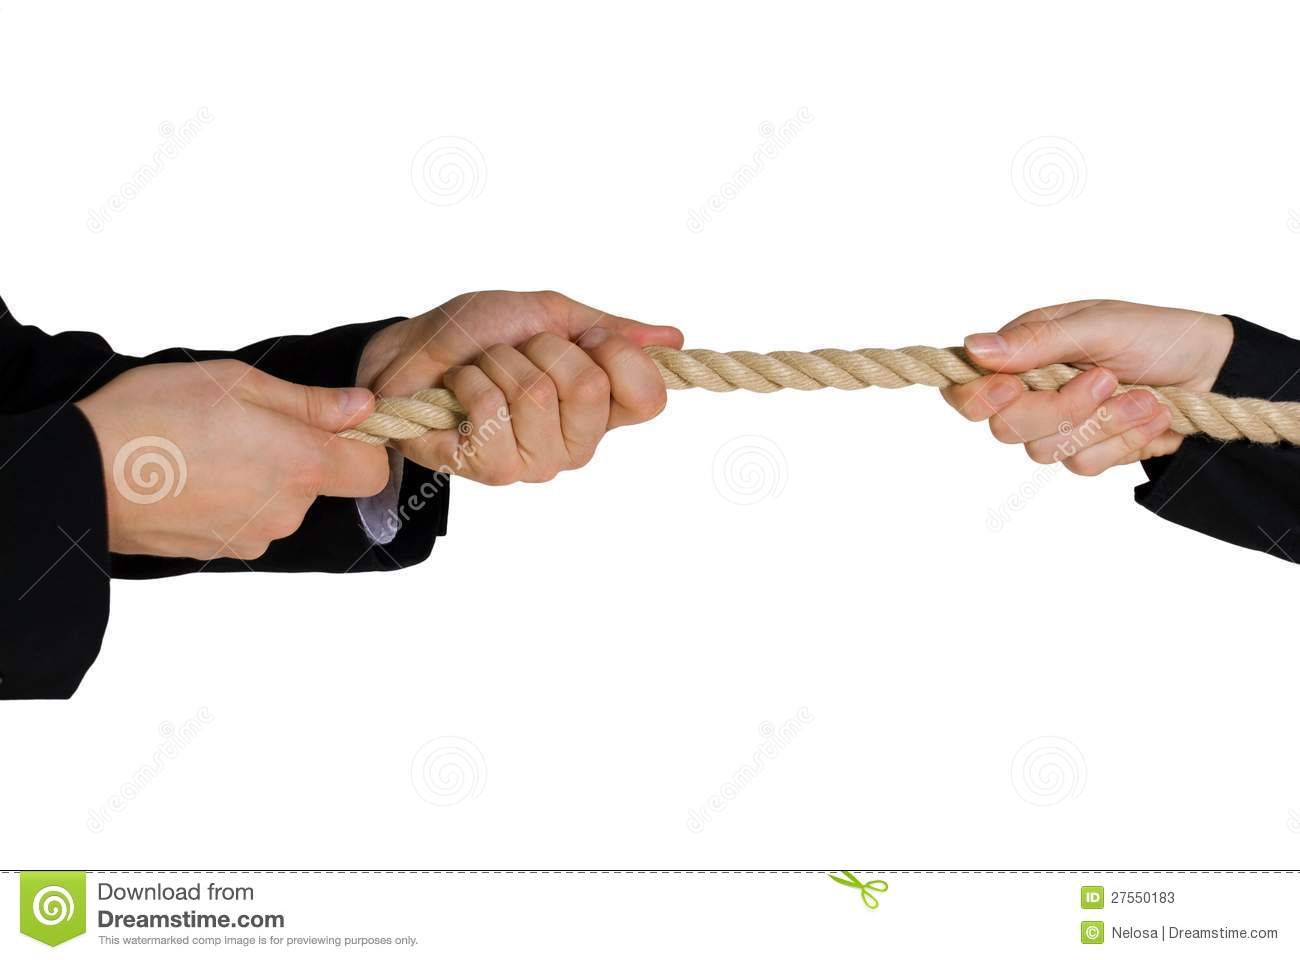 Stock Photos Tug War Hands Pulling Rope Image27550183 together with View besides Template Main Idea Box also Stock Illustration Mock Up Three Blank Black Picture Frames Old Brick Wall Wooden Floor Background D Template Design Image47000130 additionally Royalty Free Stock Photo D Man Sitting Floor Reading Book Idea Bulb Above His Head Over White Background Image30387365. on blank floor plan